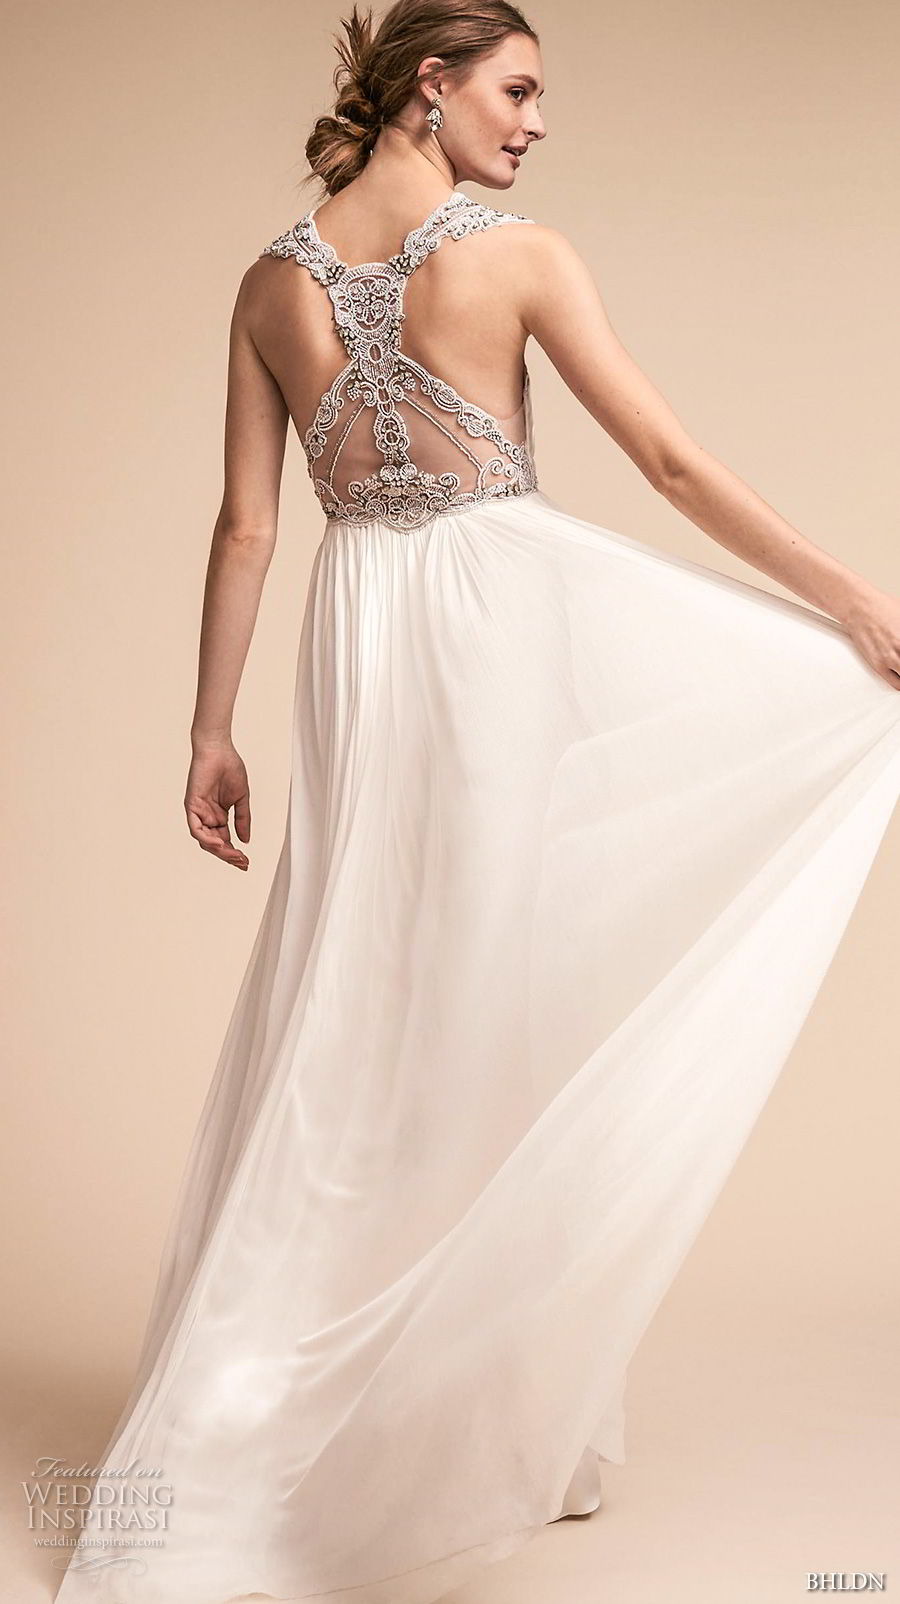 bhldn spring 2018 bridal sleeveless v neck ruched bodice elegant grecian a  line wedding dress rasor back sweep train (10) bv